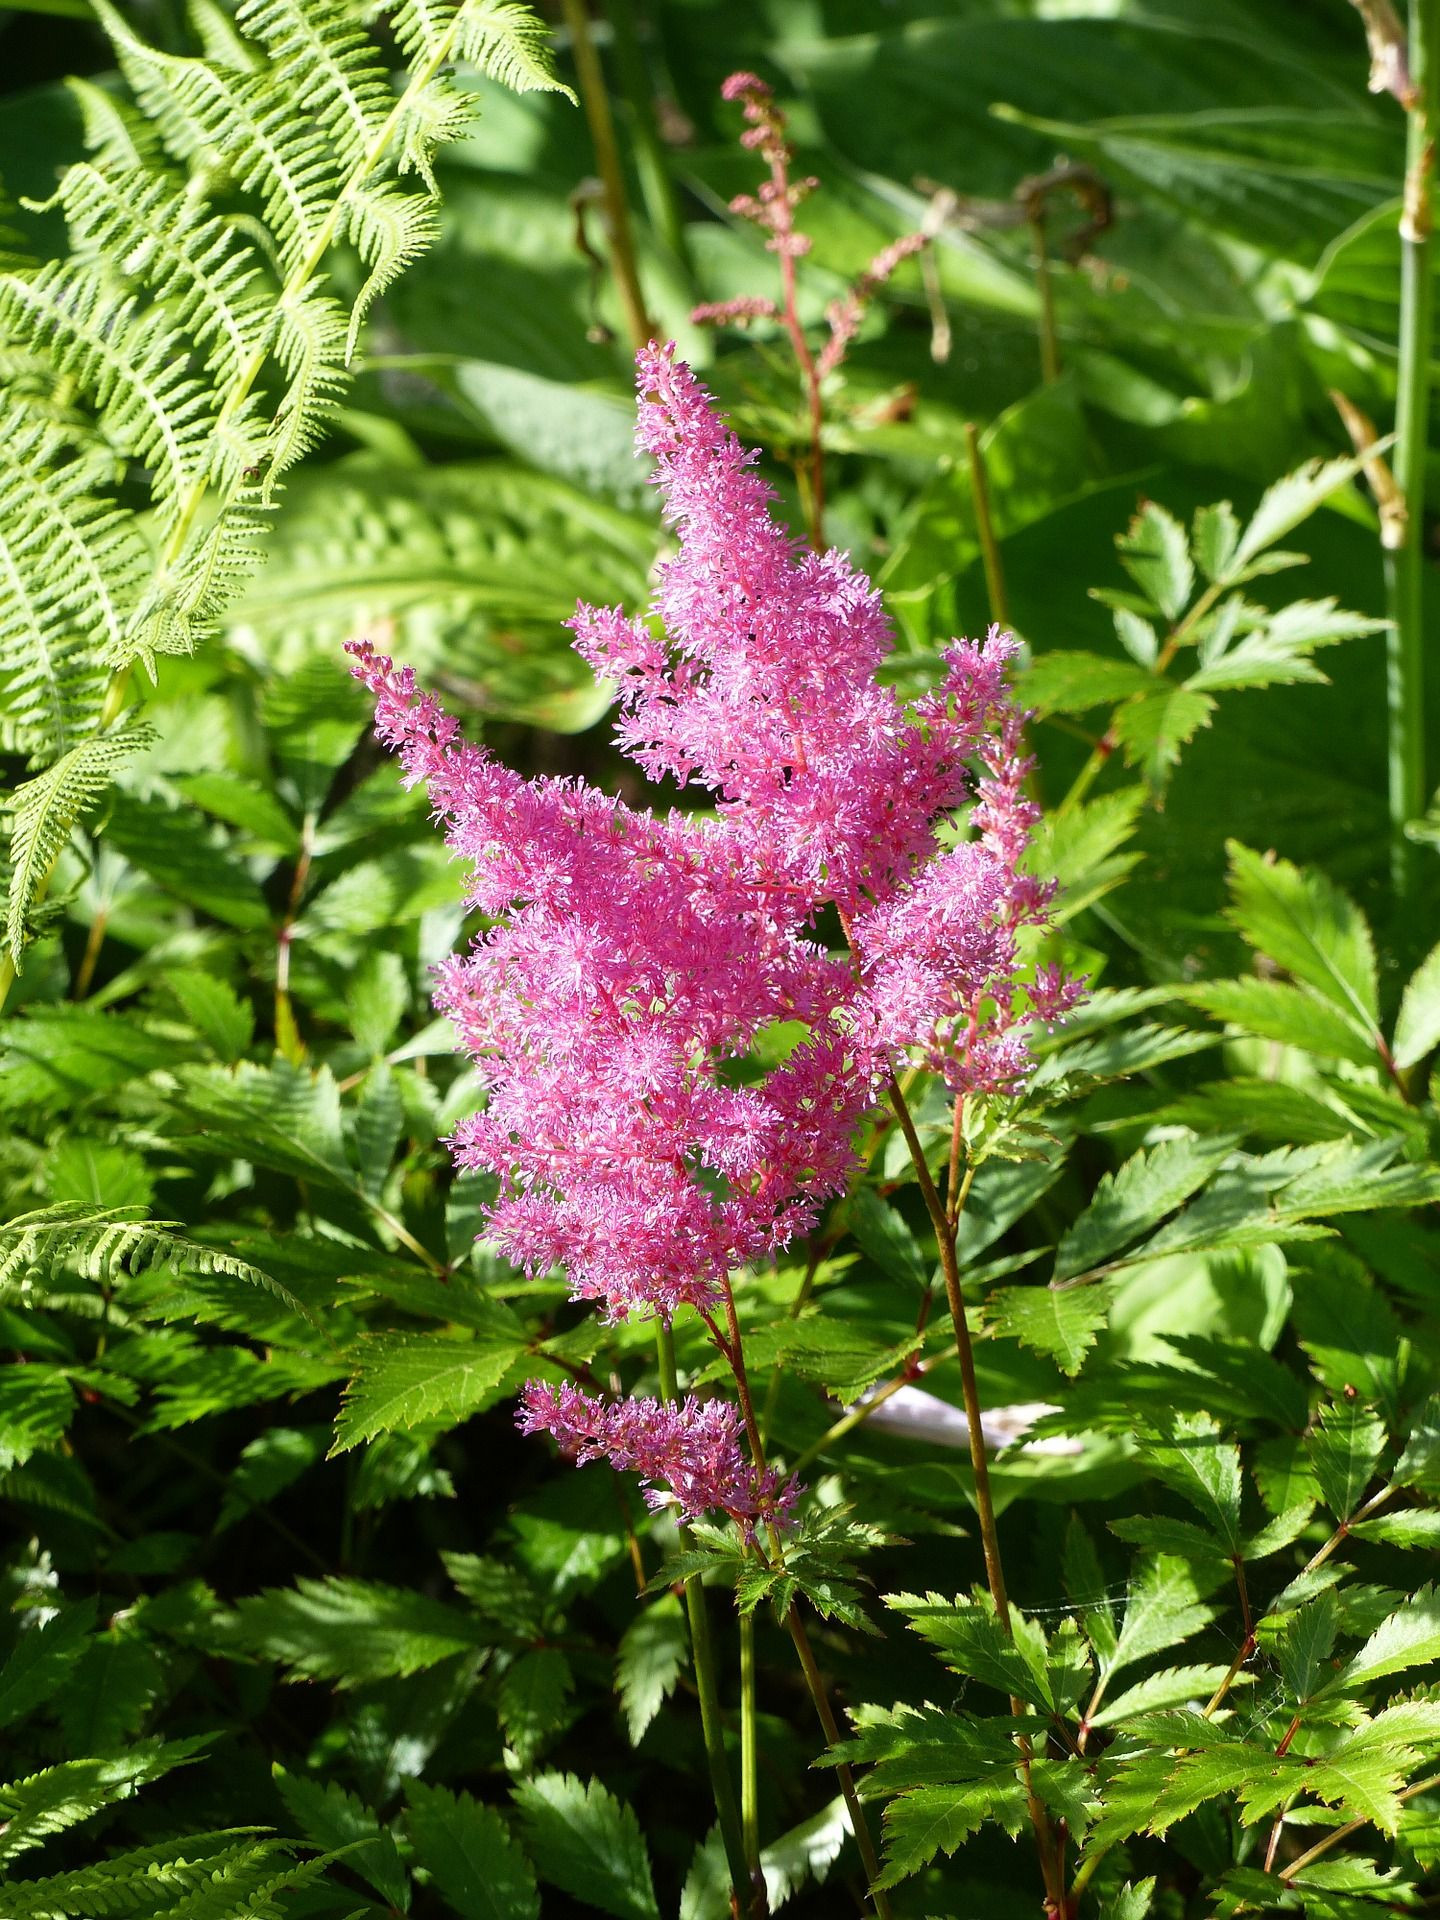 Learn how to plant grow and care for astilbe flowers with this garden guide from The Old Farmer s Almanac